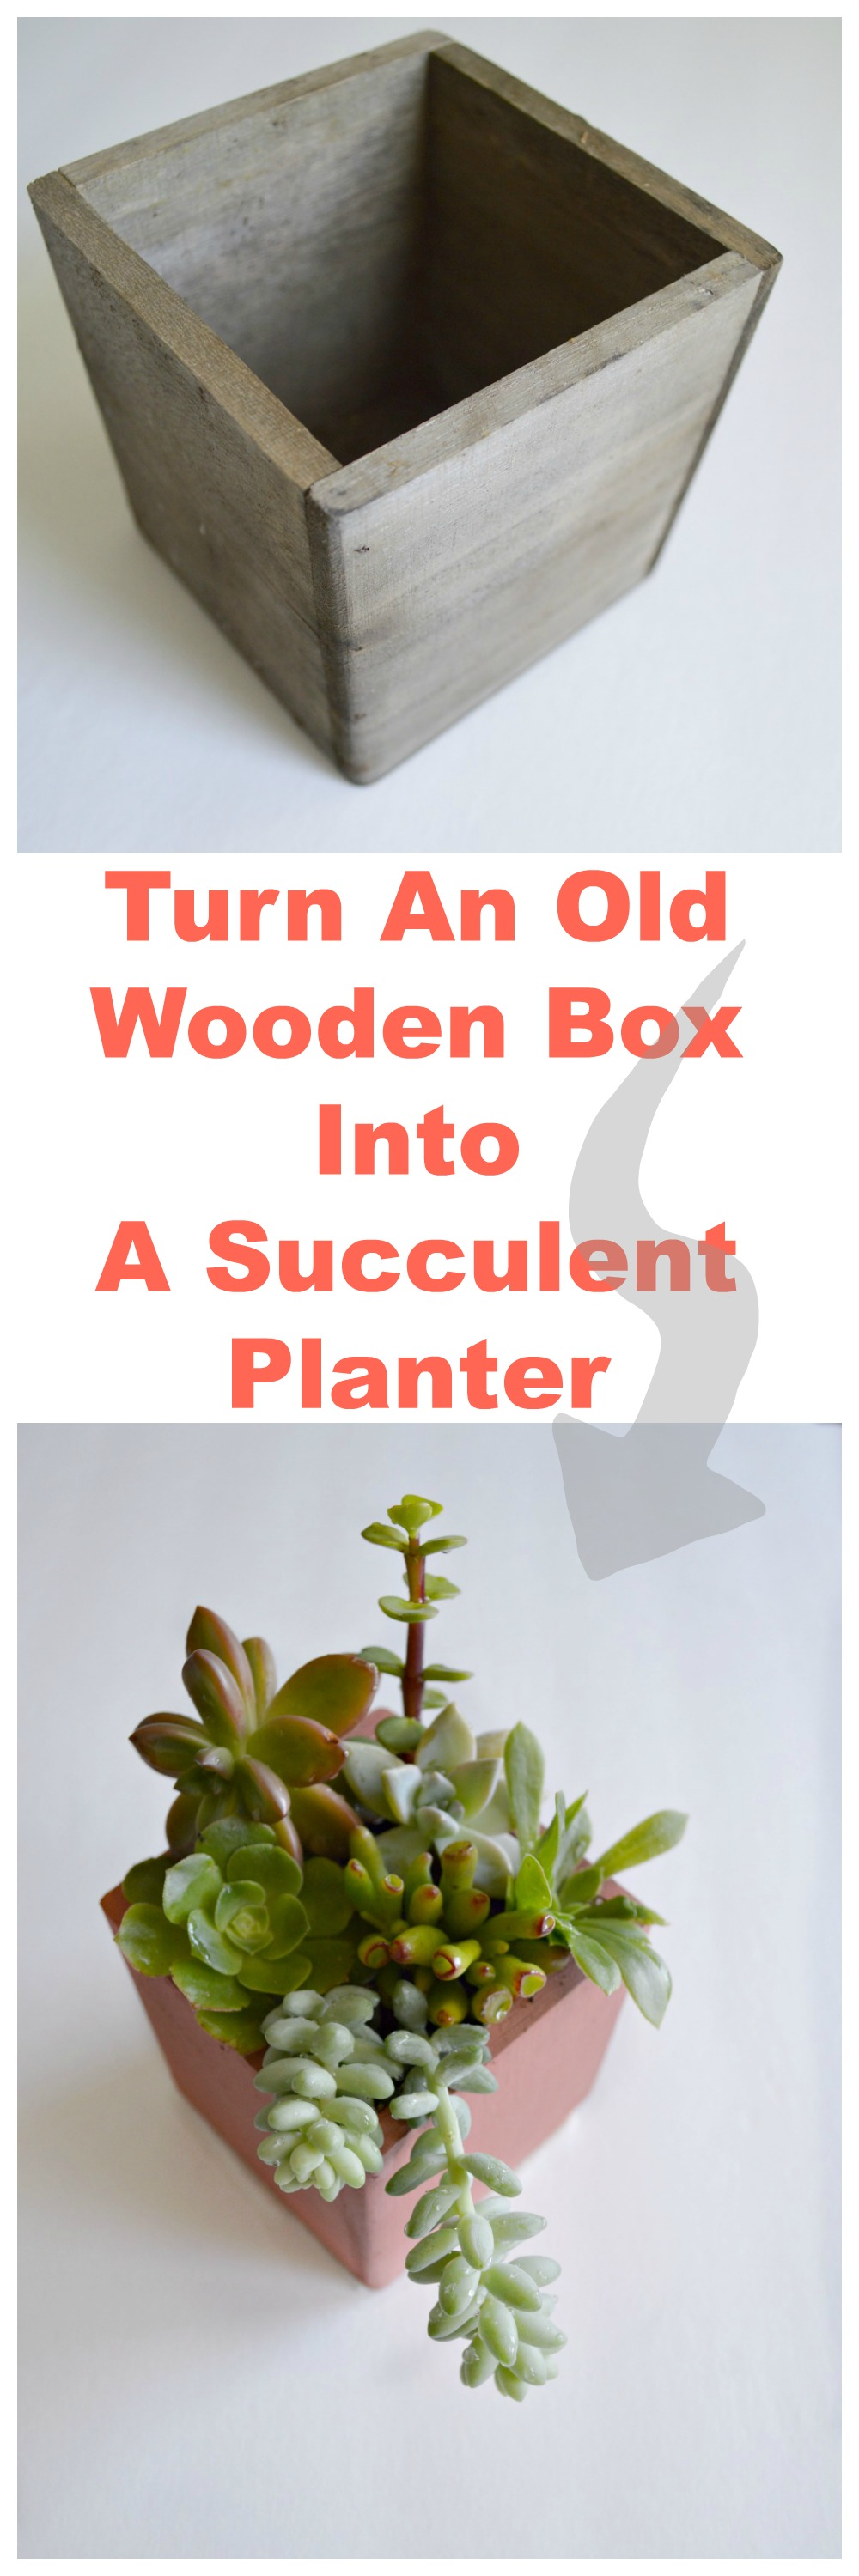 DIY Succulent Planter out of a old wooden box, great idea!